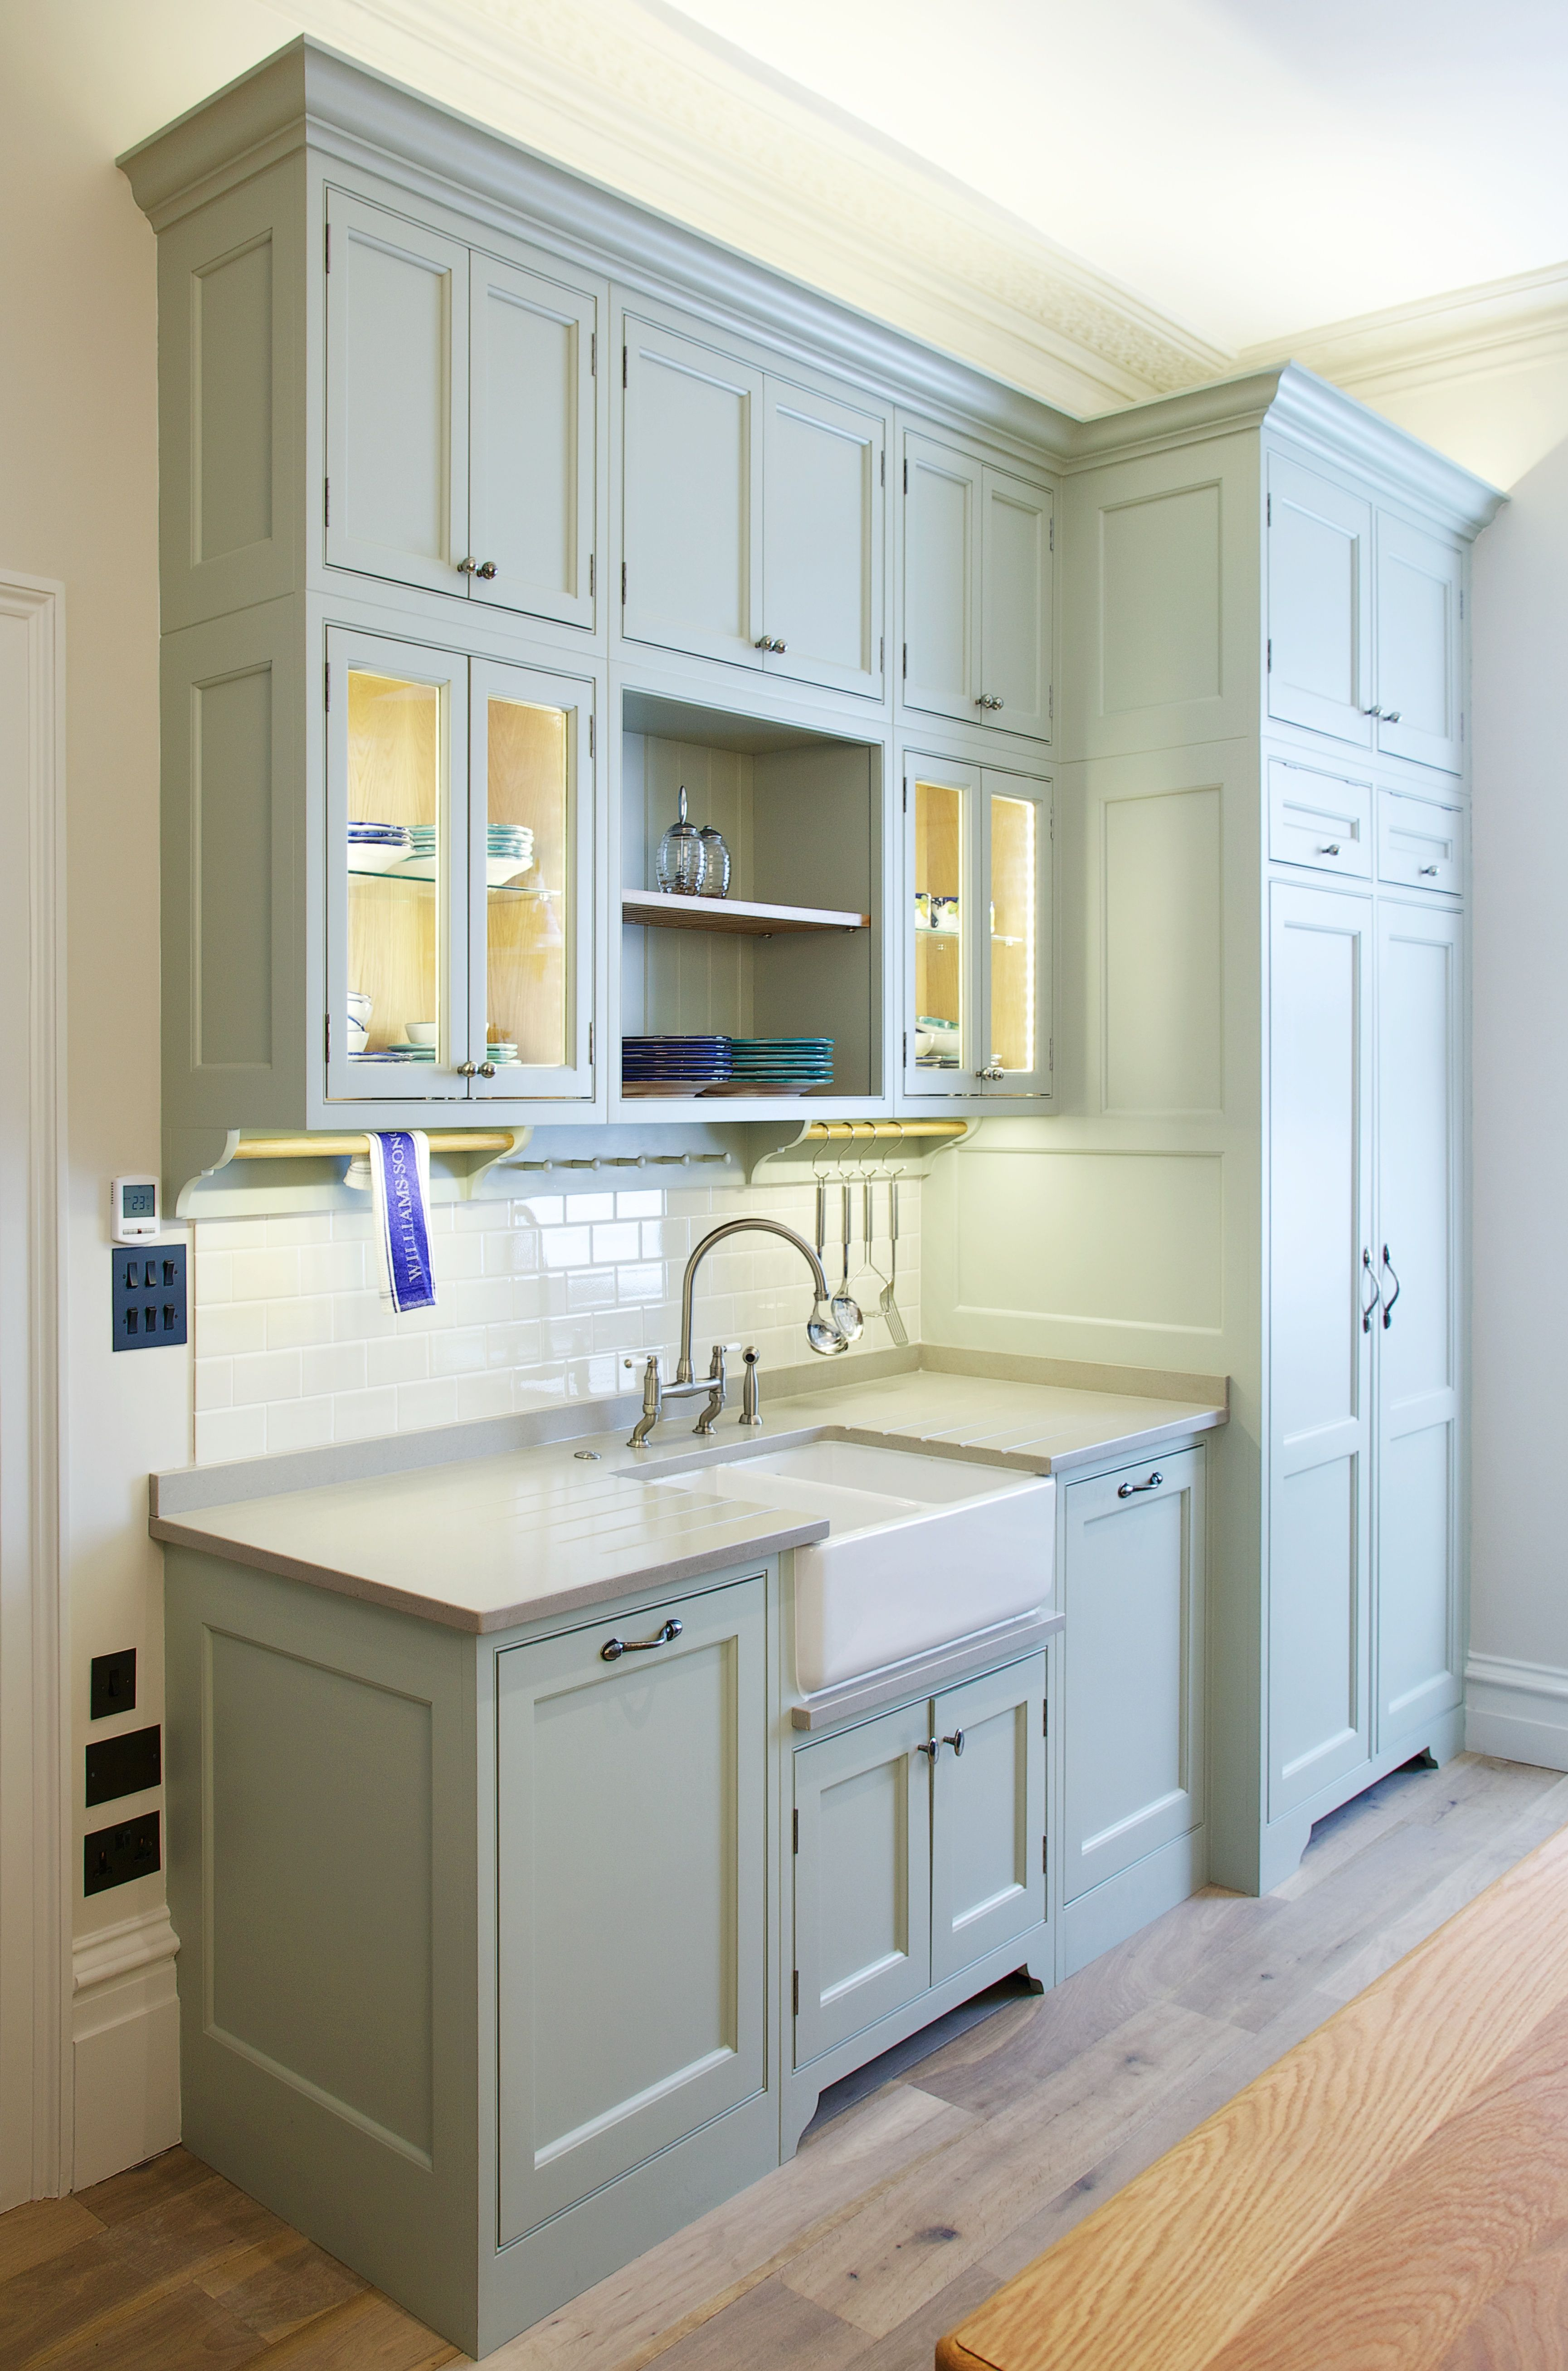 Bespoke Kitchen Design Painting charlie kingham | gallery | hand painted bespoke kitchens | spaces